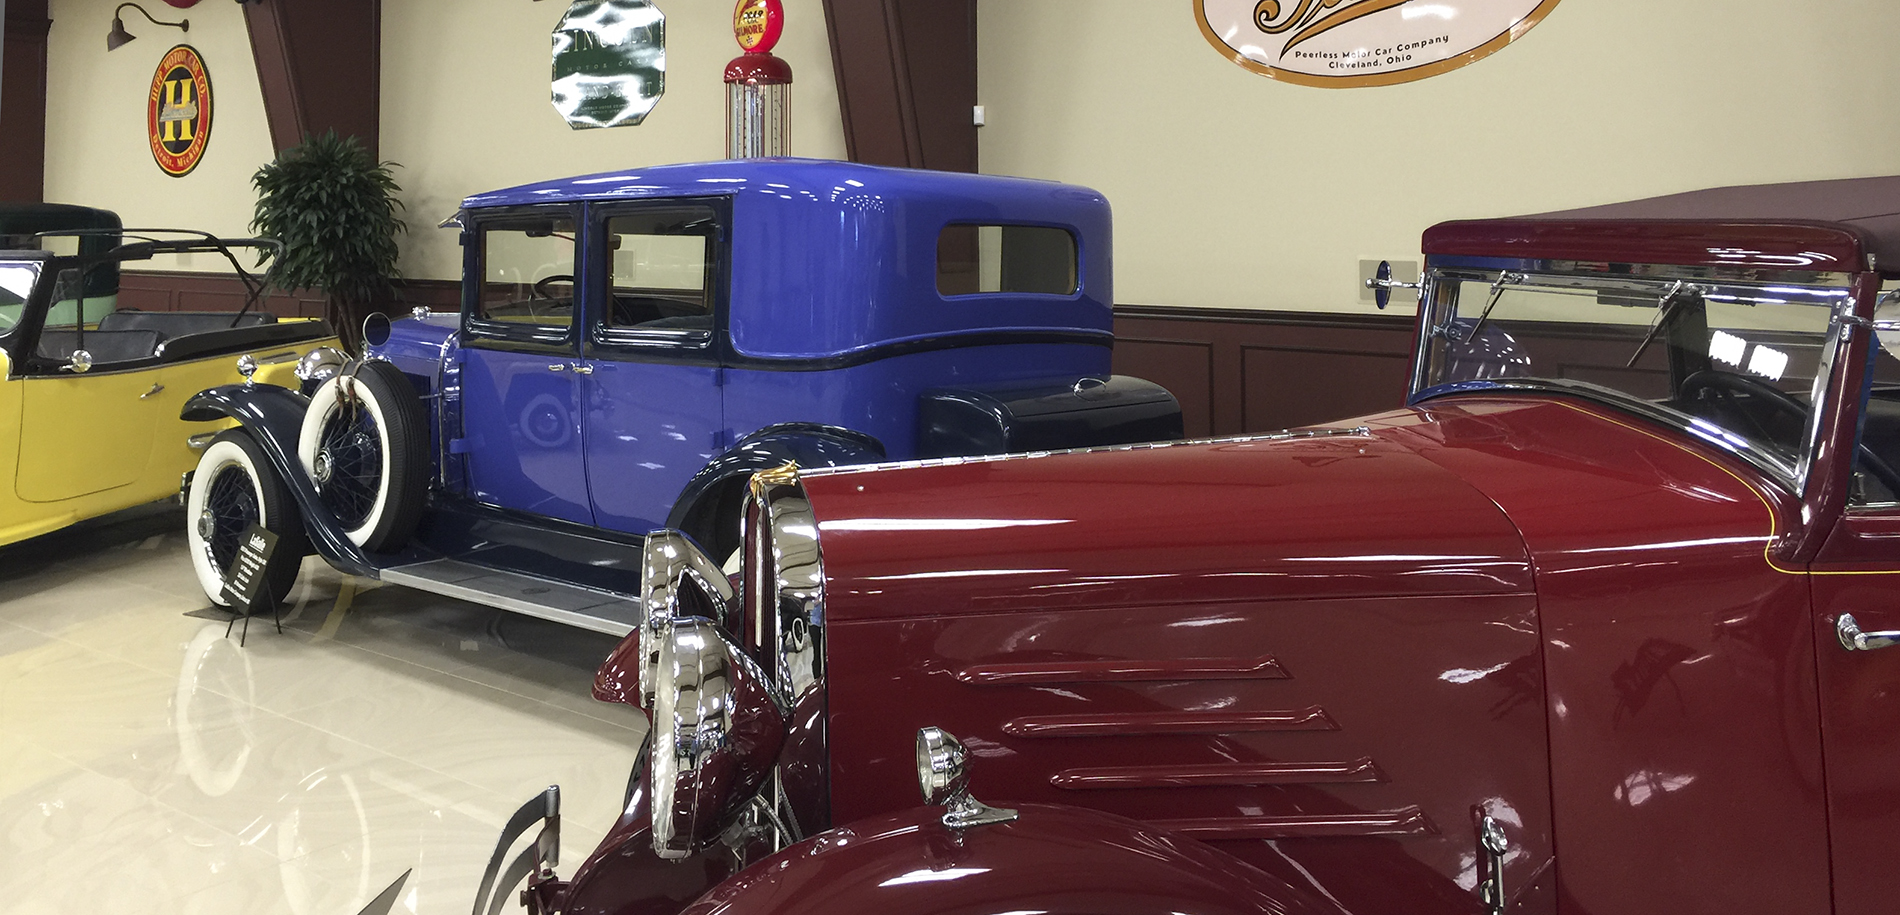 Rangely Automotive Museum - Rangely Area Chamber of Commerce , CO